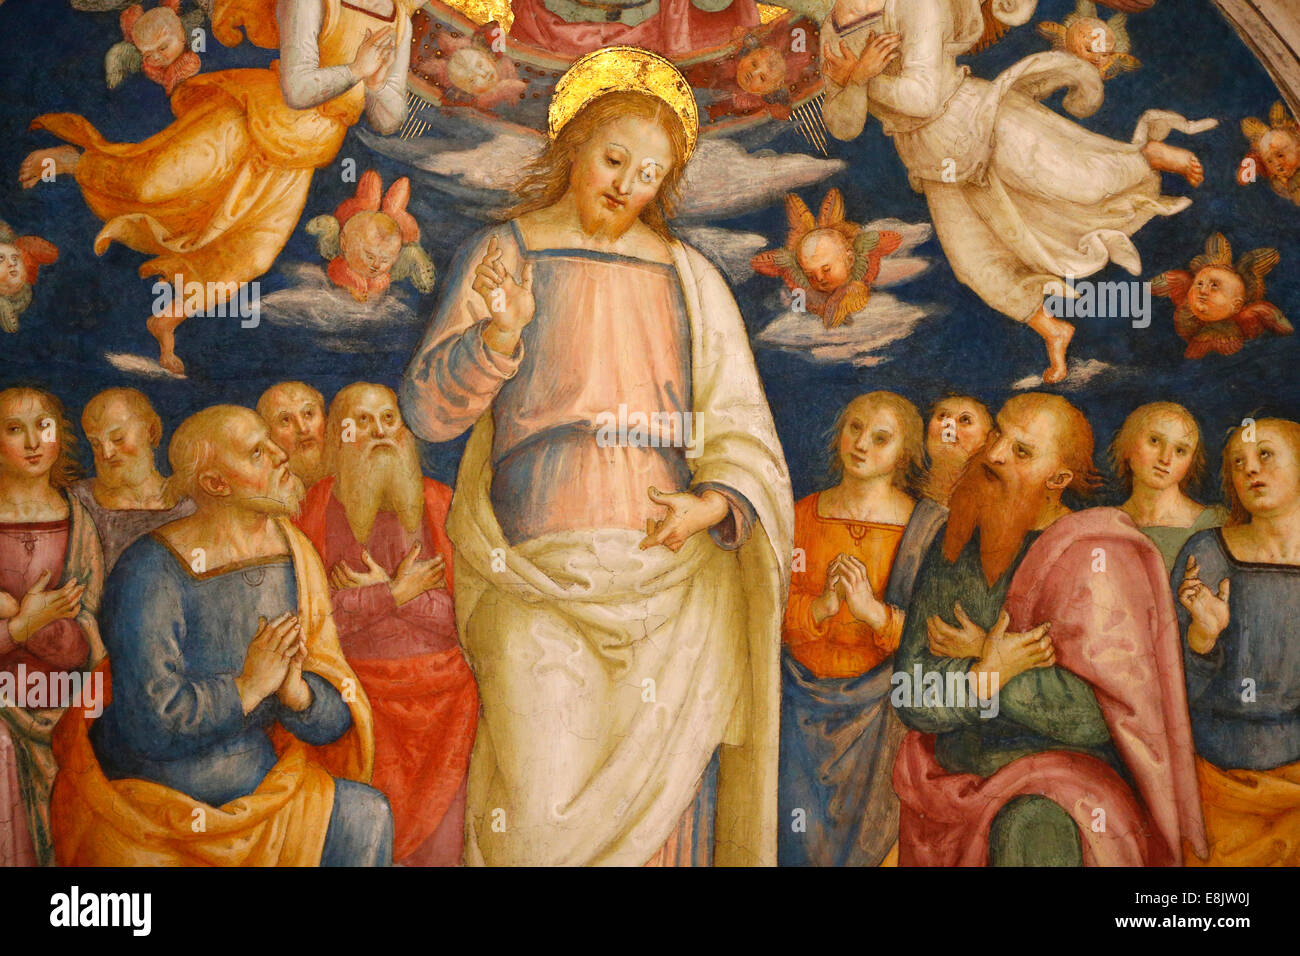 Jesus and the apostles. Detail of the celling. Room of the Fire in the Borgo. Vatican Museum. - Stock Image